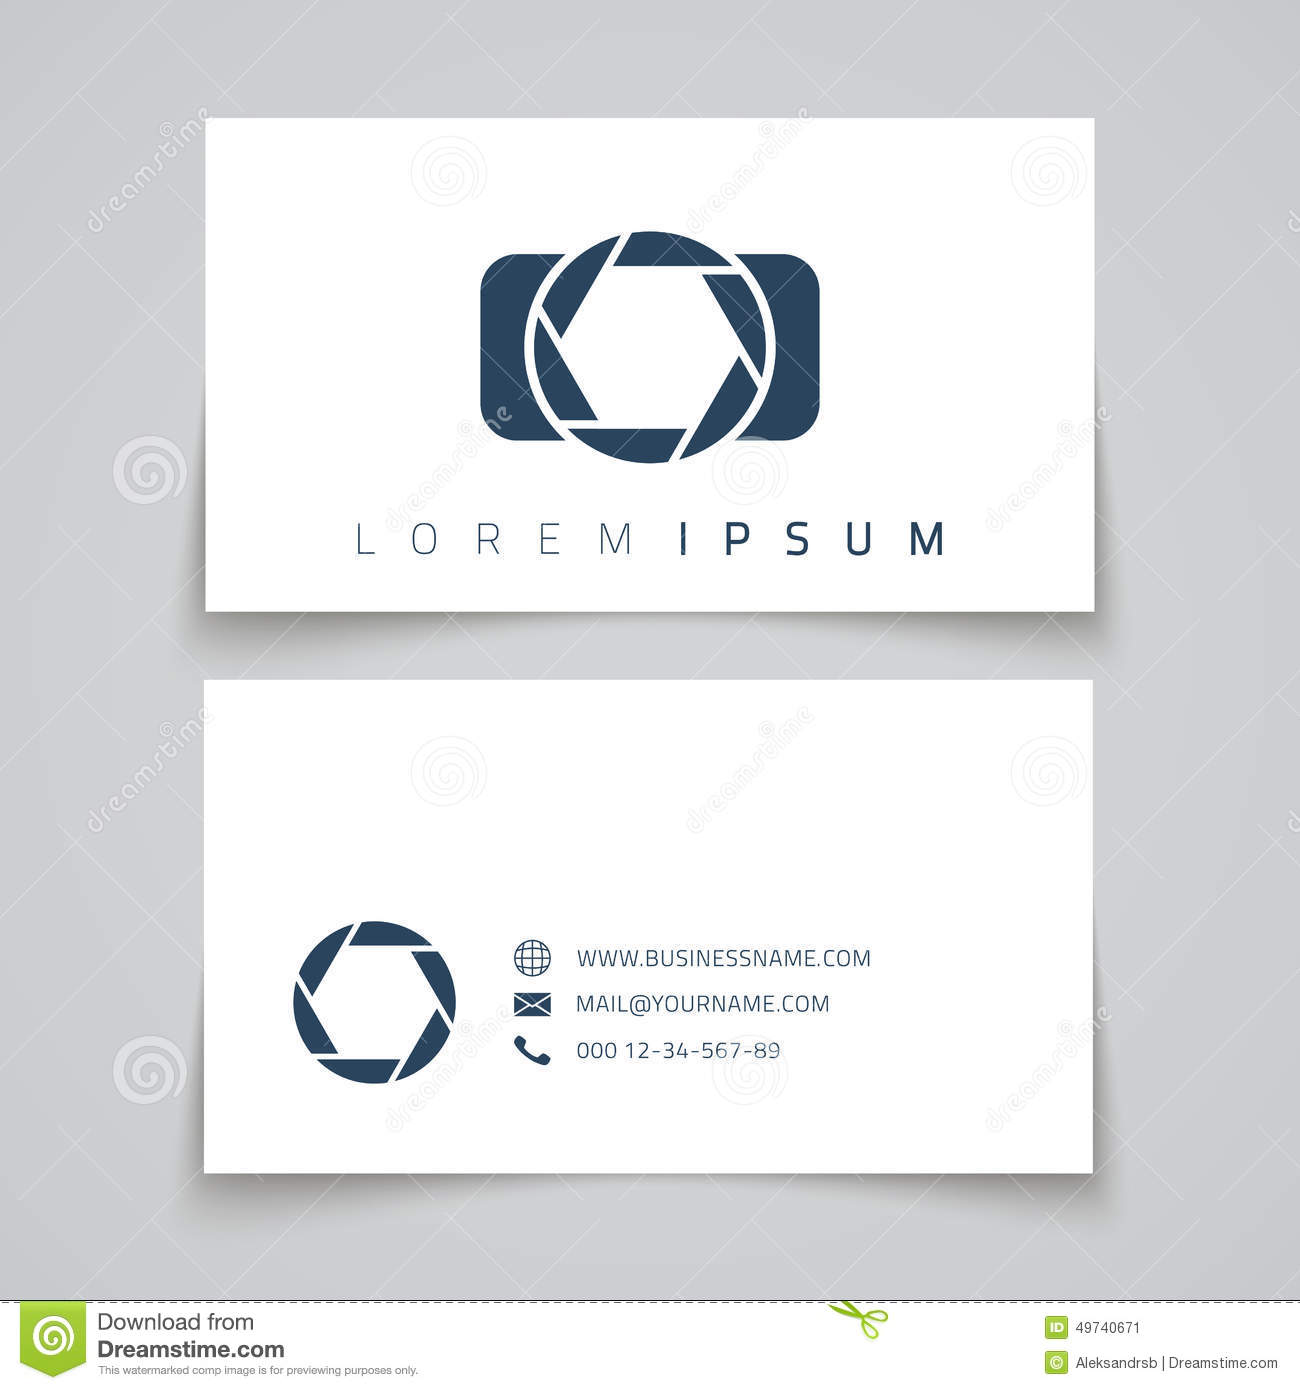 Business card template camera conceptl logo stock vector business card template camera conceptl logo colourmoves